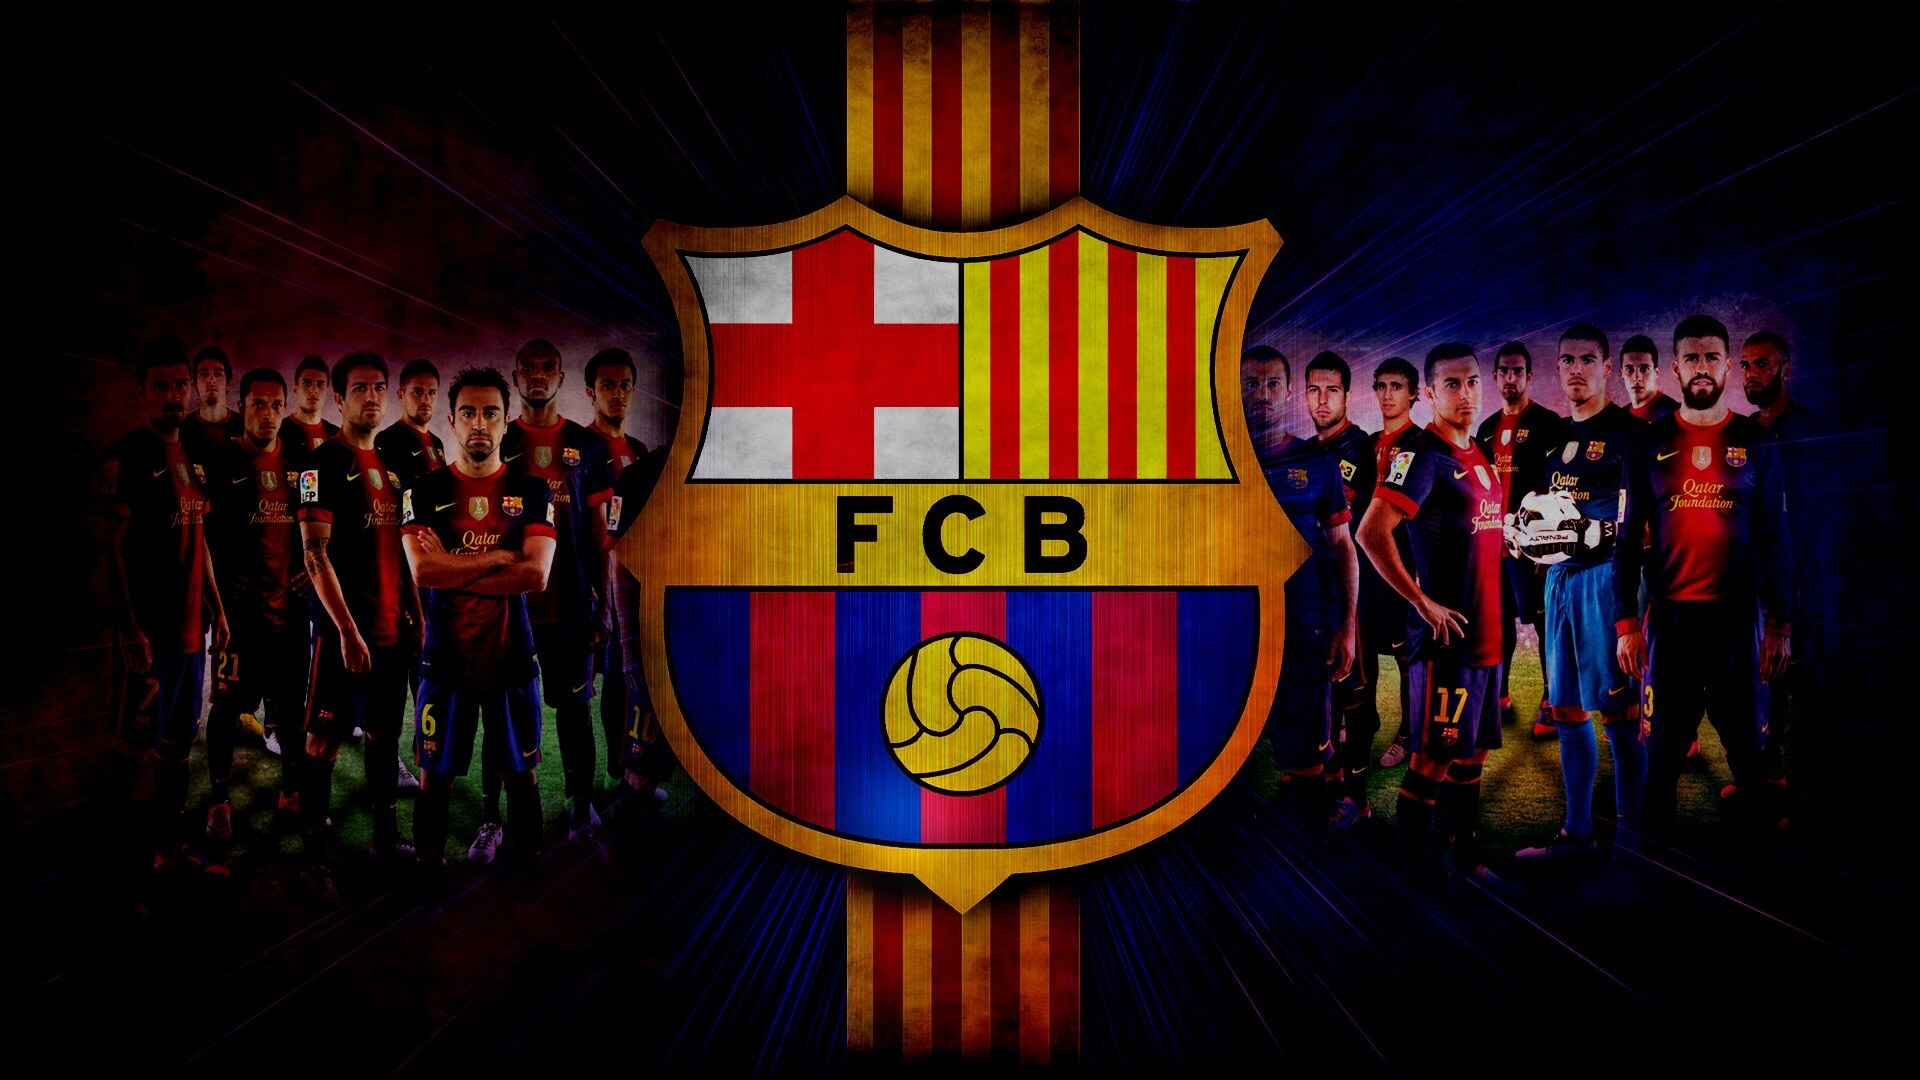 Fc Barca Wallpaper Fc Barcelona Roster 1920x1080 Download Hd Wallpaper Wallpapertip